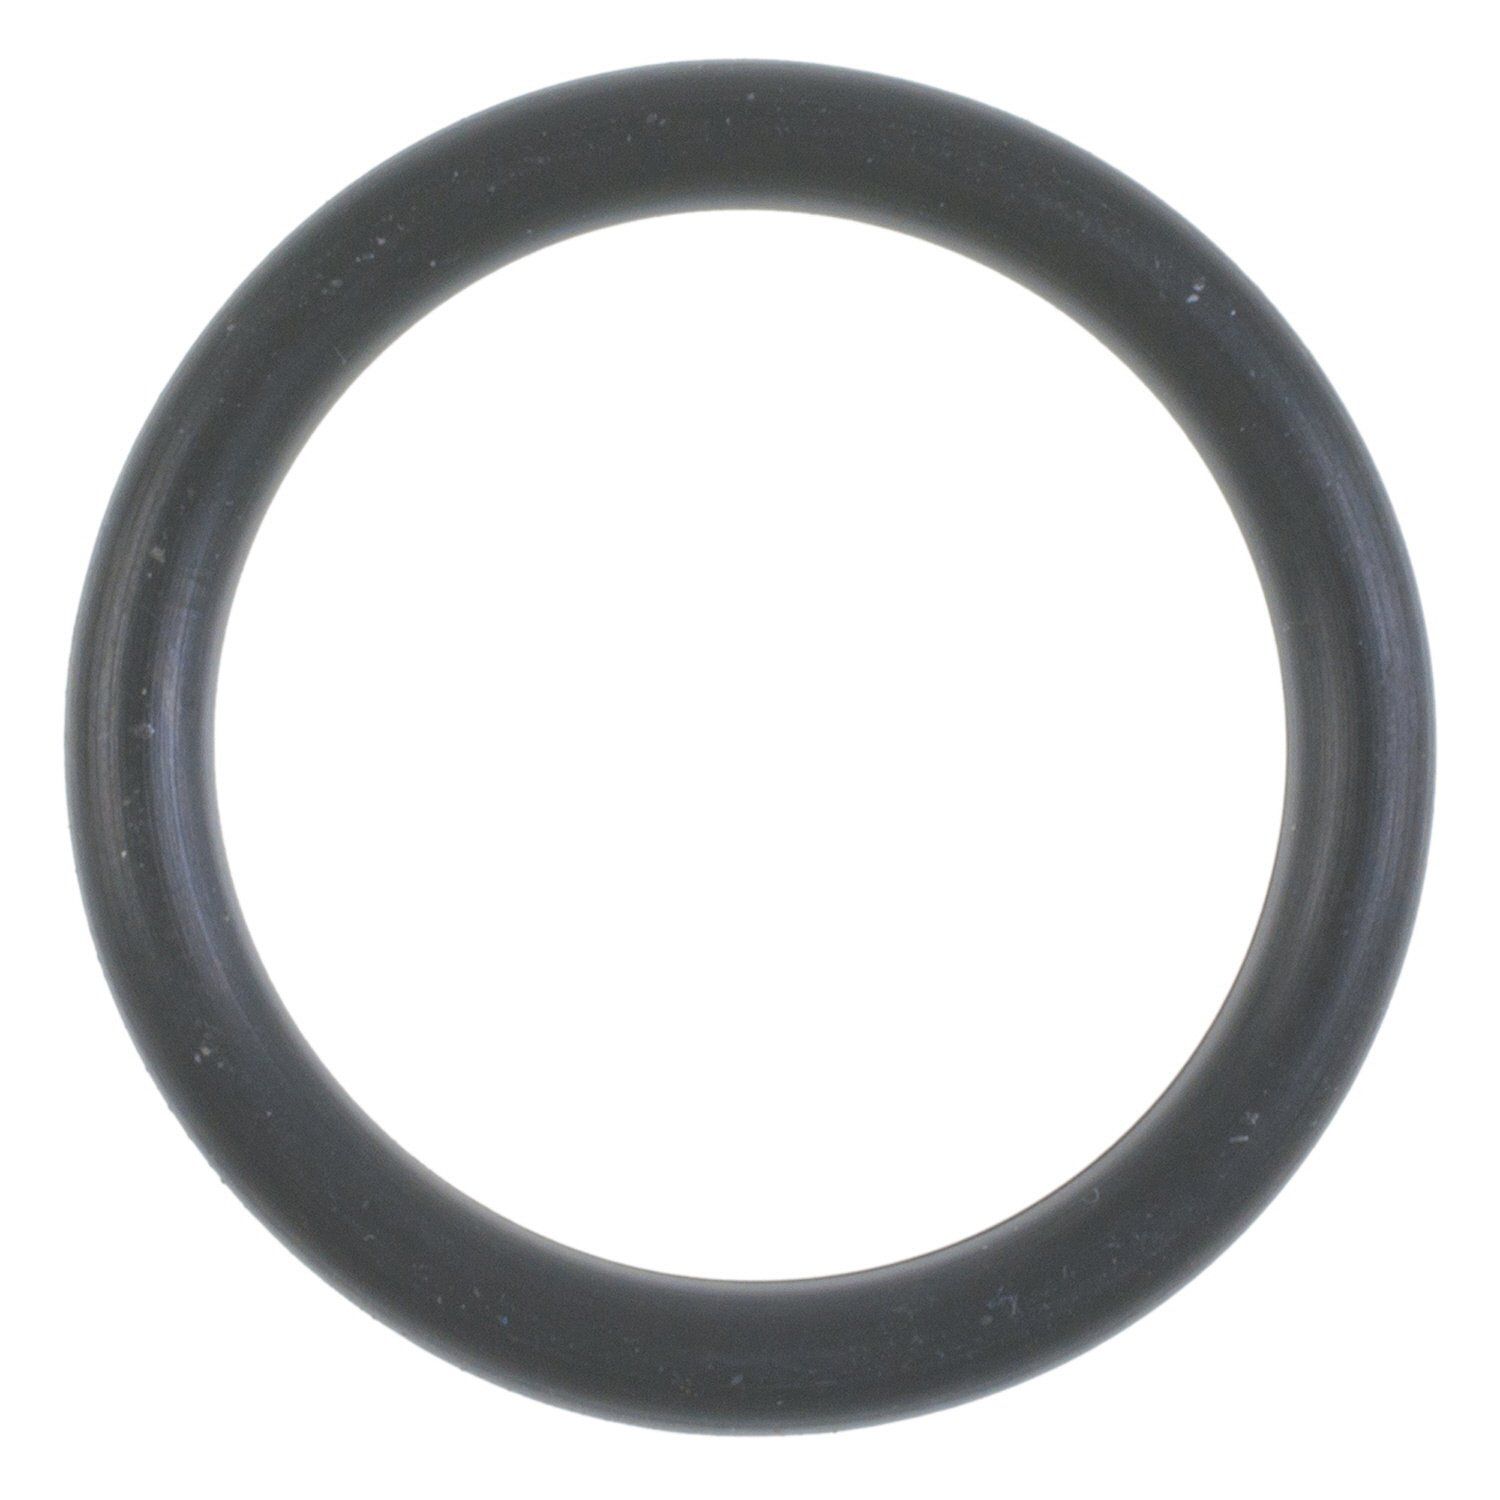 Felpro Distributor O-Ring New For Honda Accord Odyssey Prelude Acura CL 72416